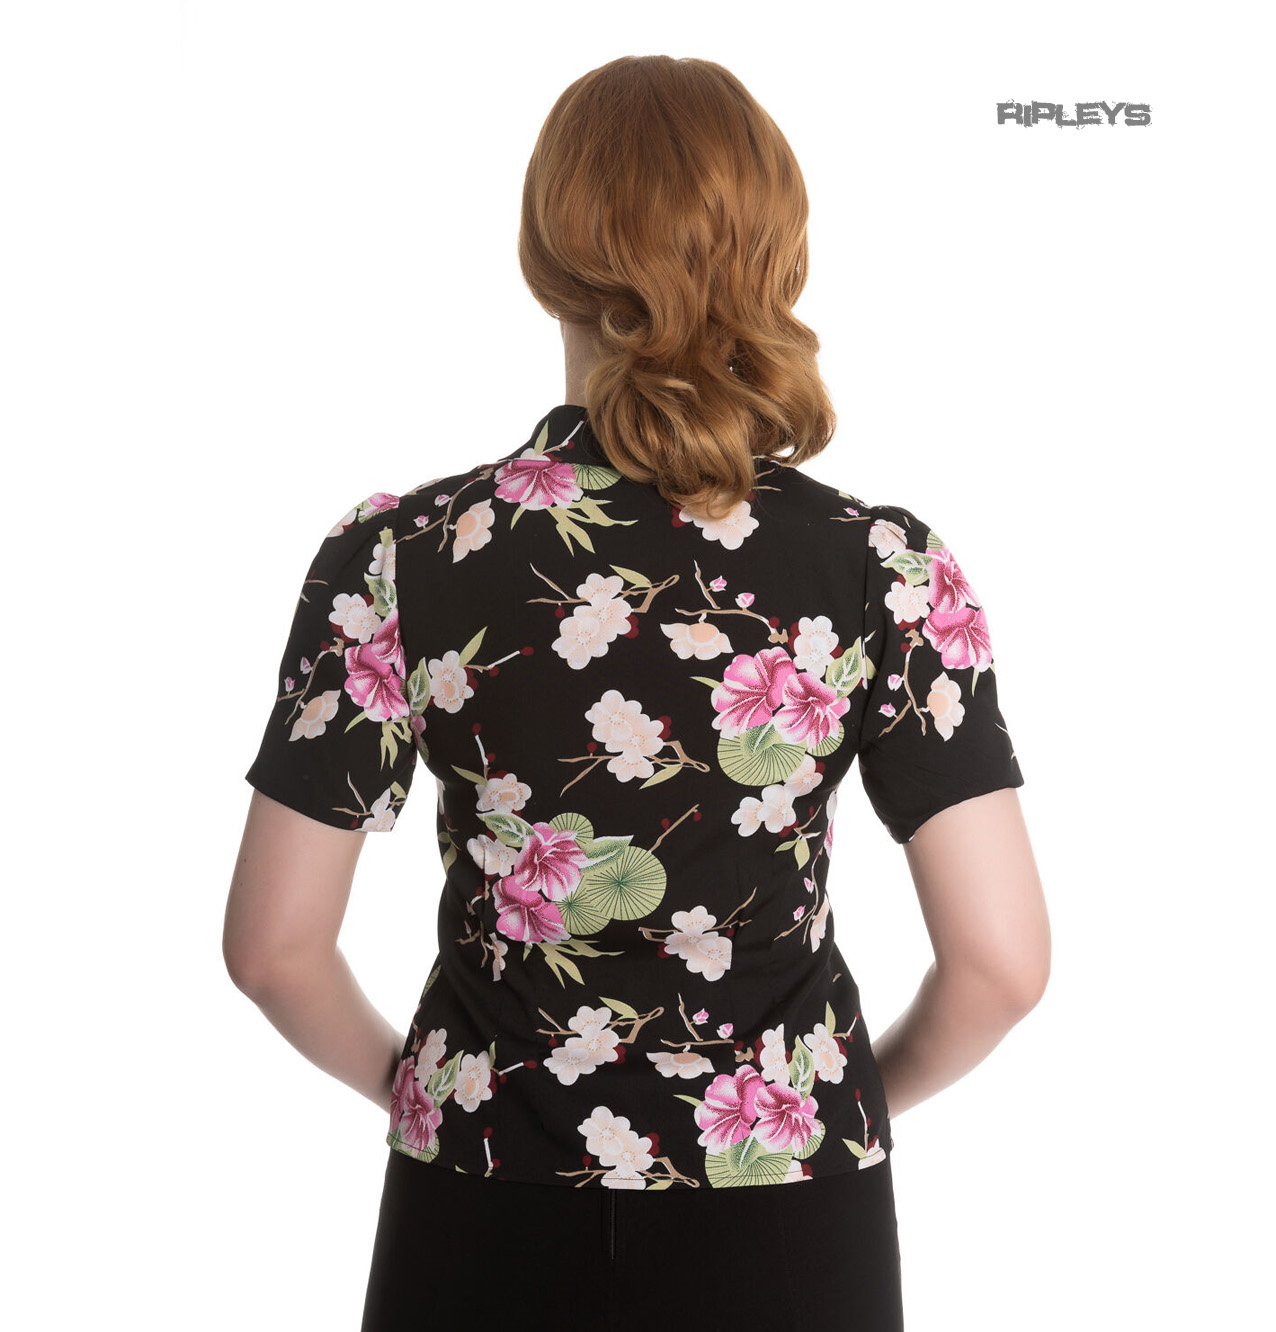 Hell-Bunny-Shirt-Top-40s-50s-Black-FREYA-Pink-Flowers-Floral-Blouse-All-Sizes thumbnail 8